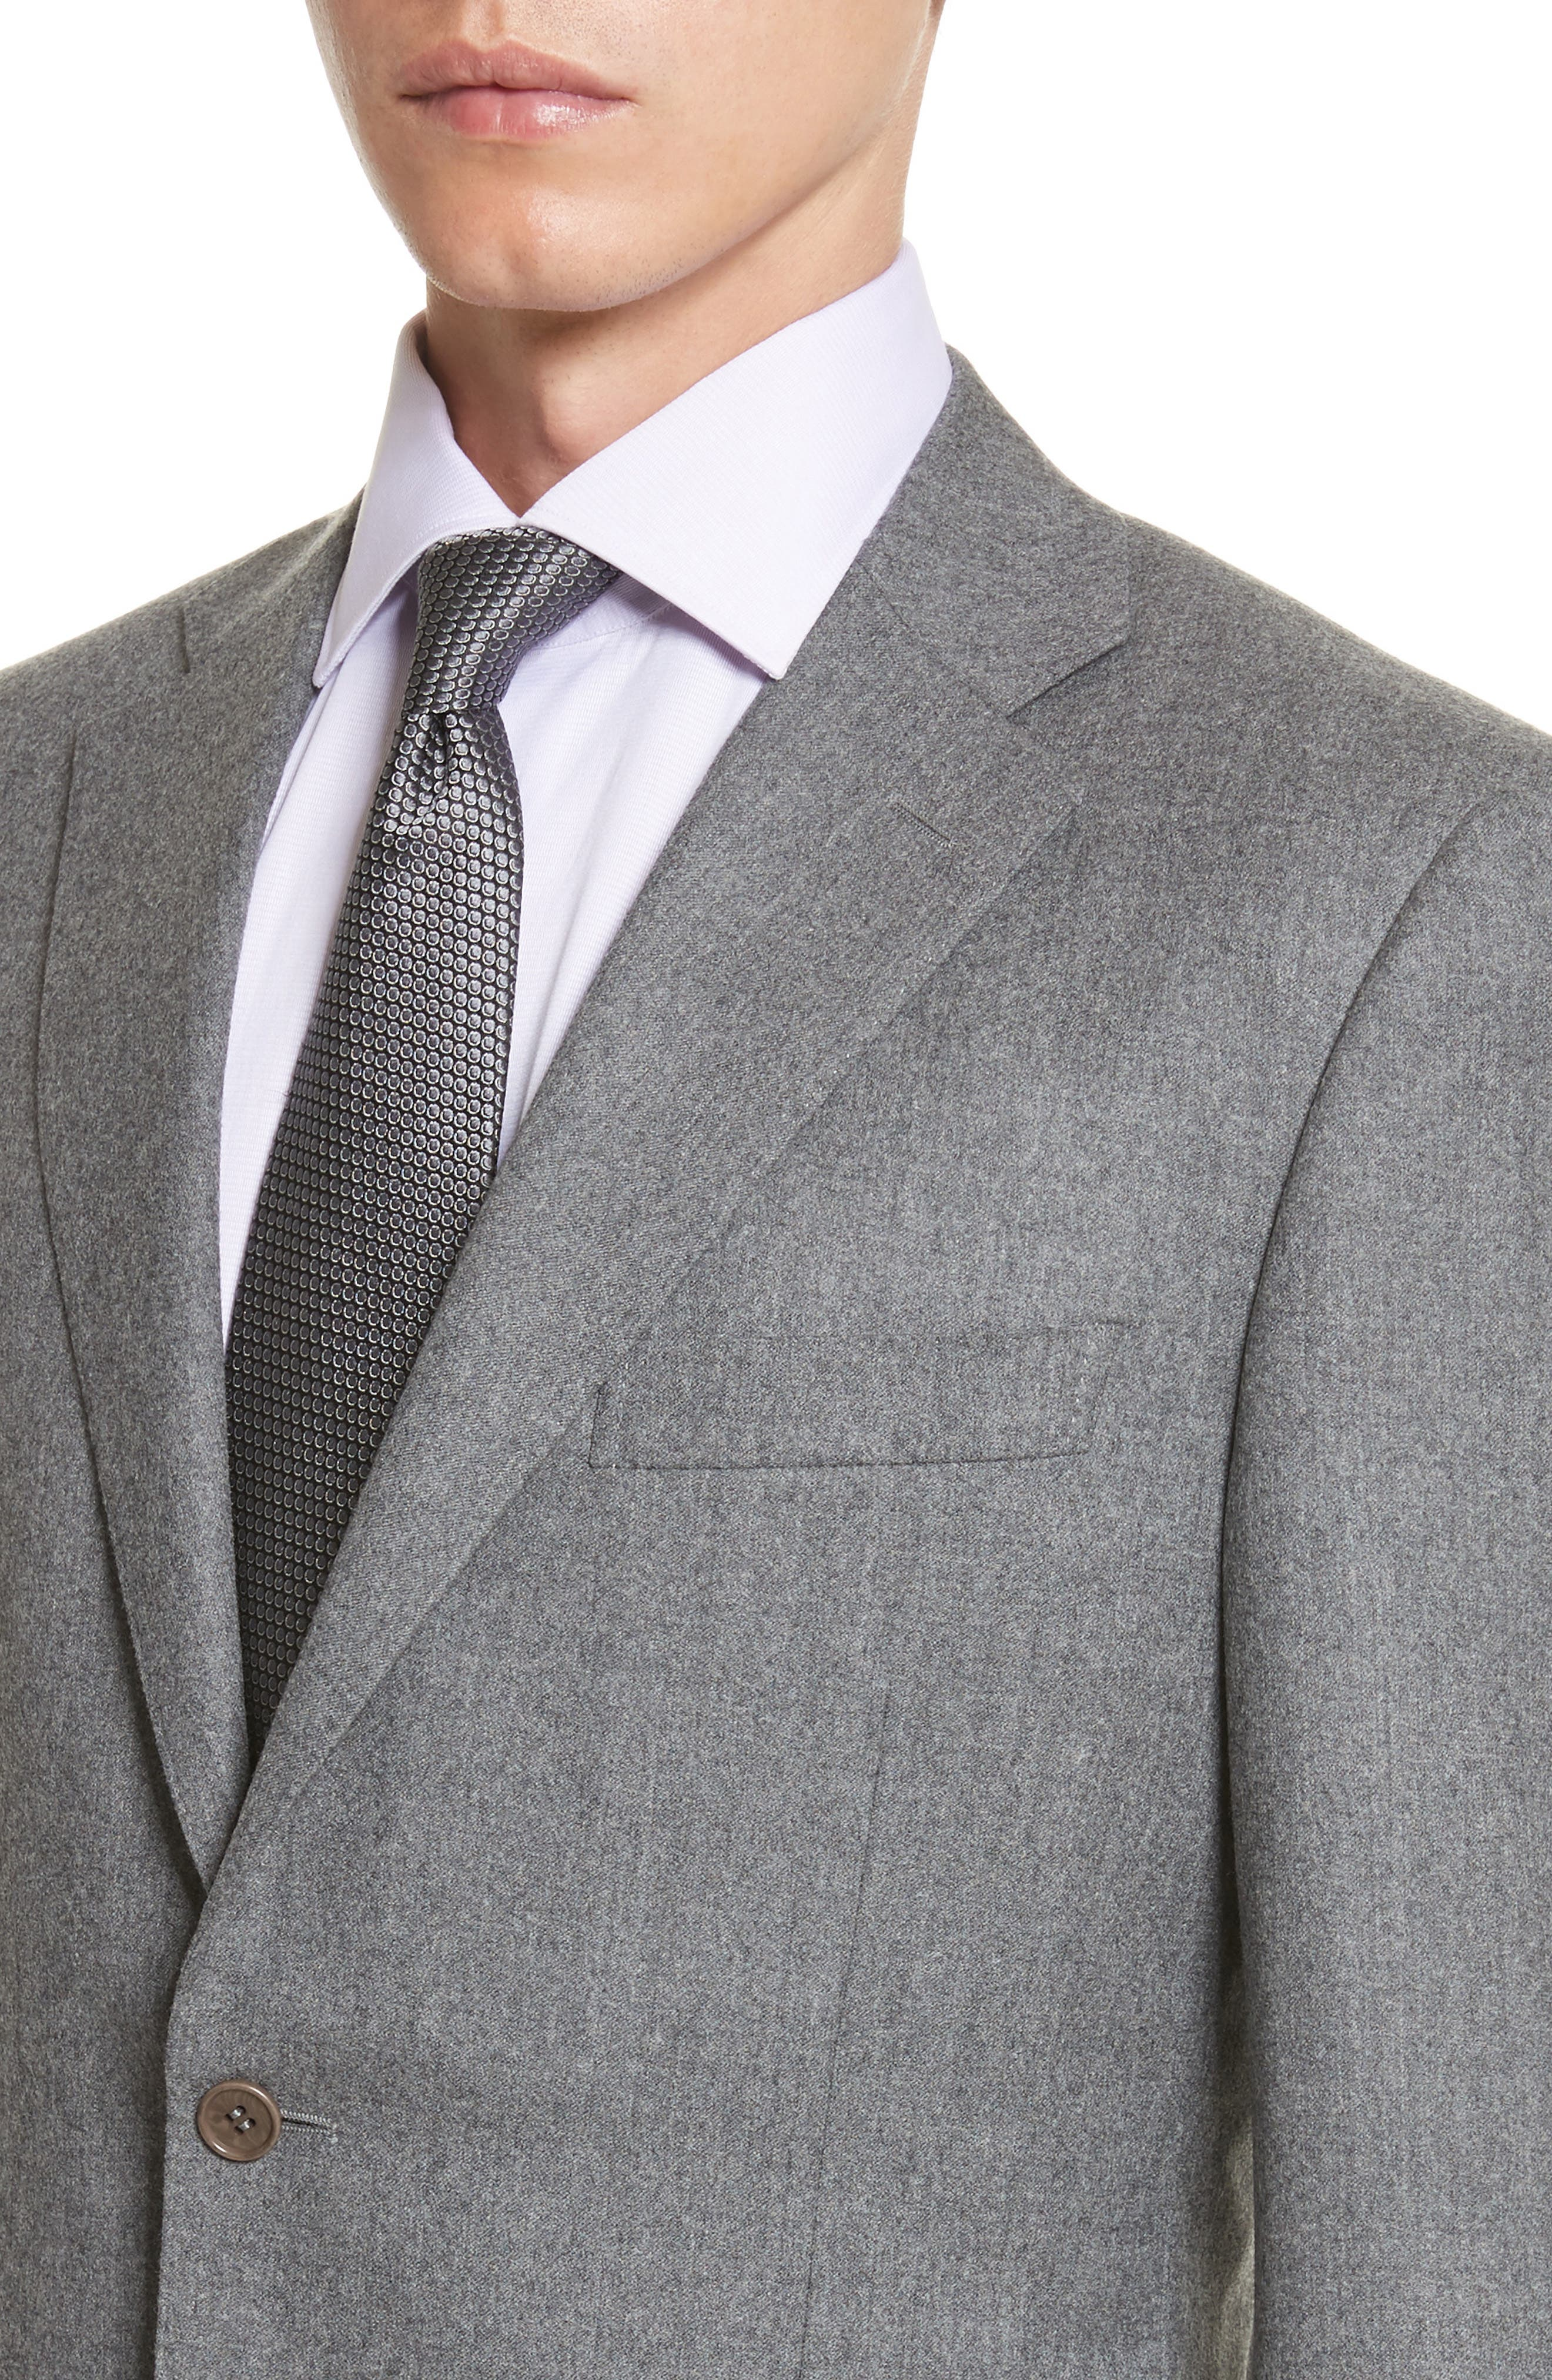 Classic Fit Solid Wool Suit,                             Alternate thumbnail 4, color,